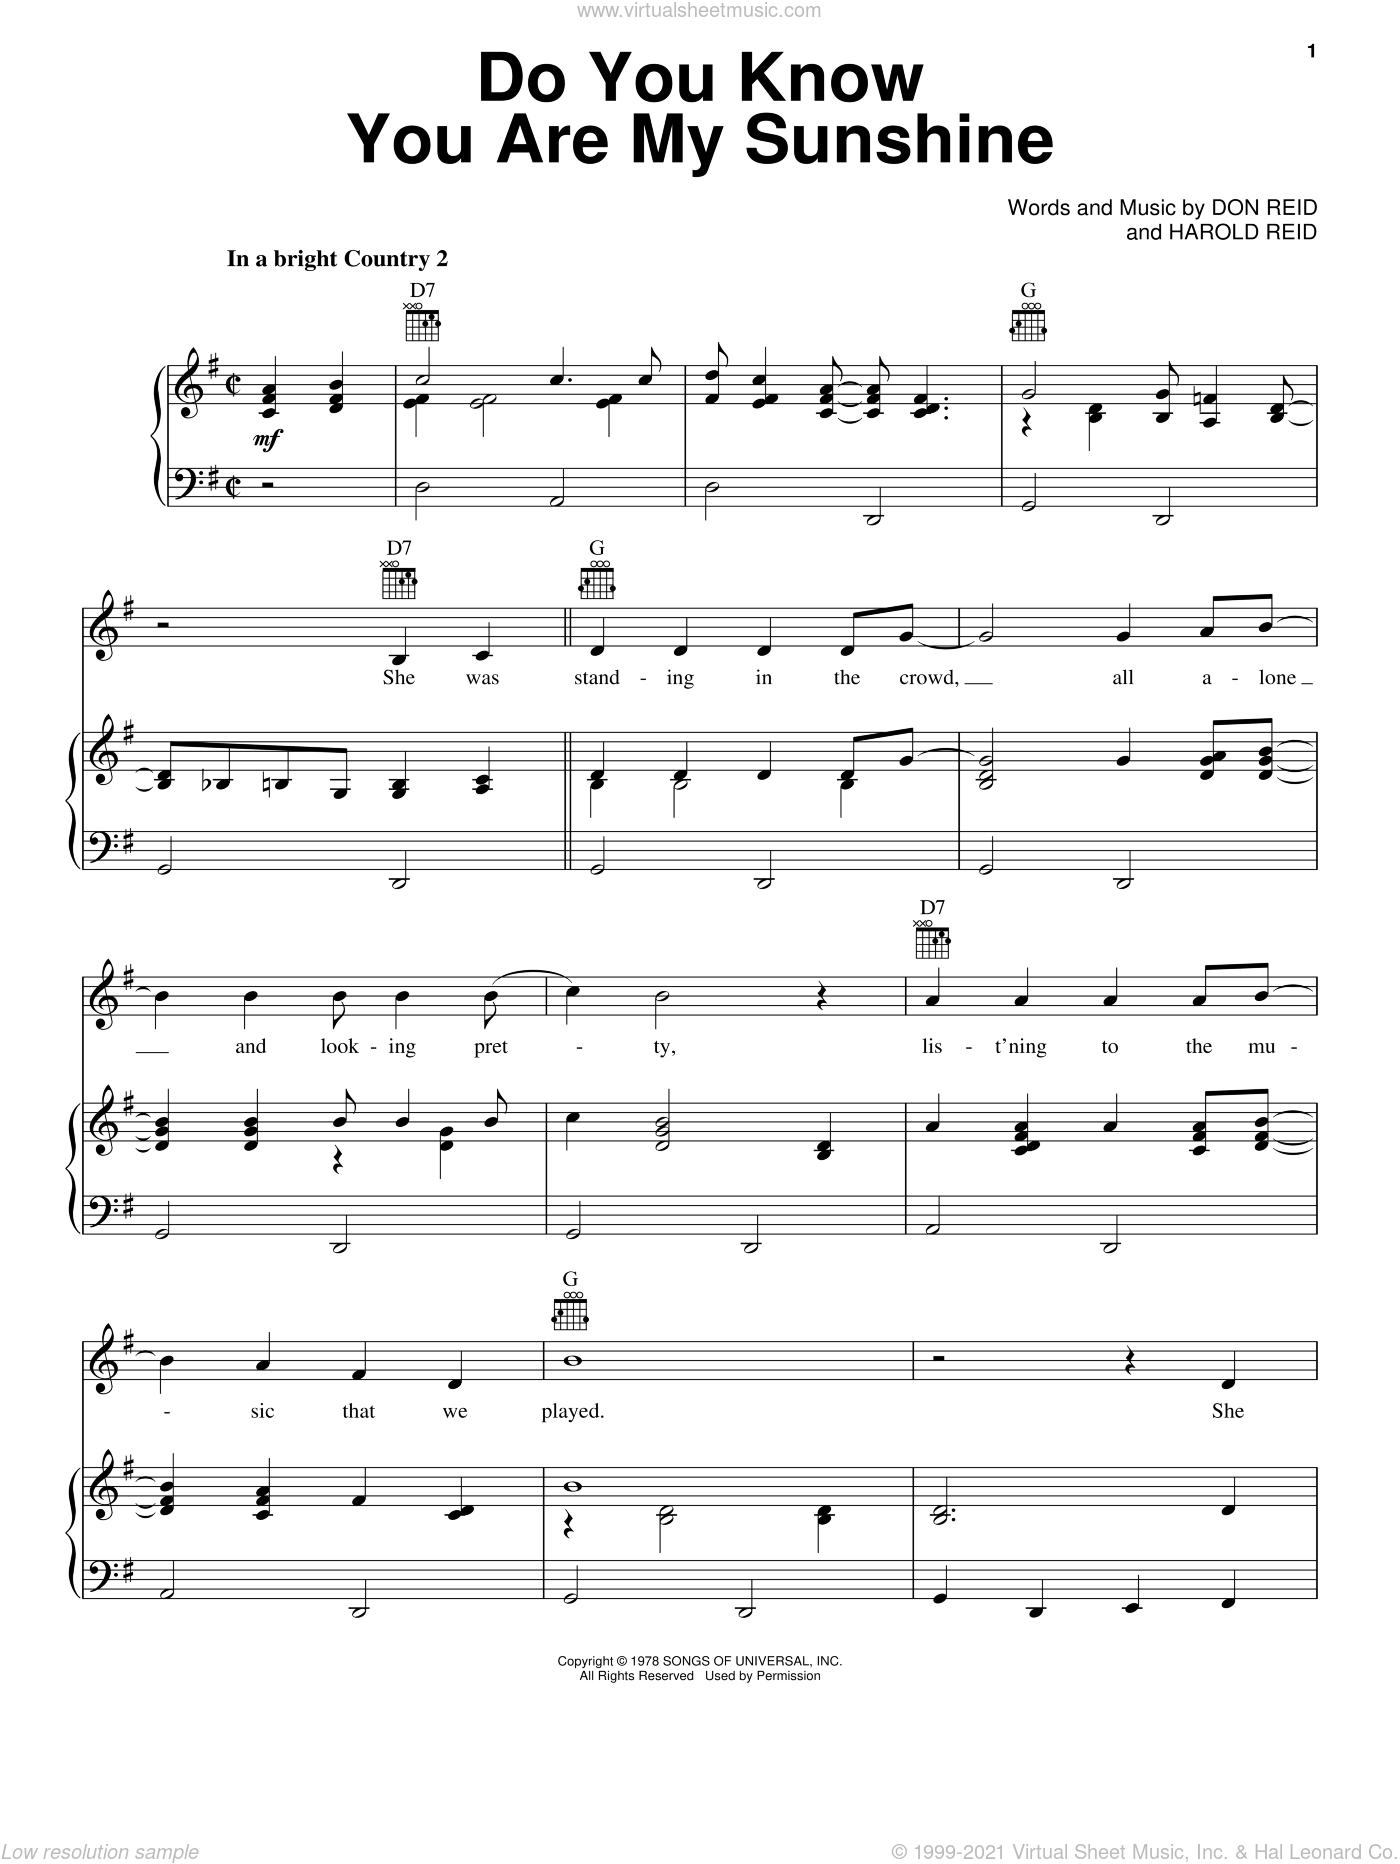 Do You Know You Are My Sunshine sheet music for voice, piano or guitar by Harold Reid